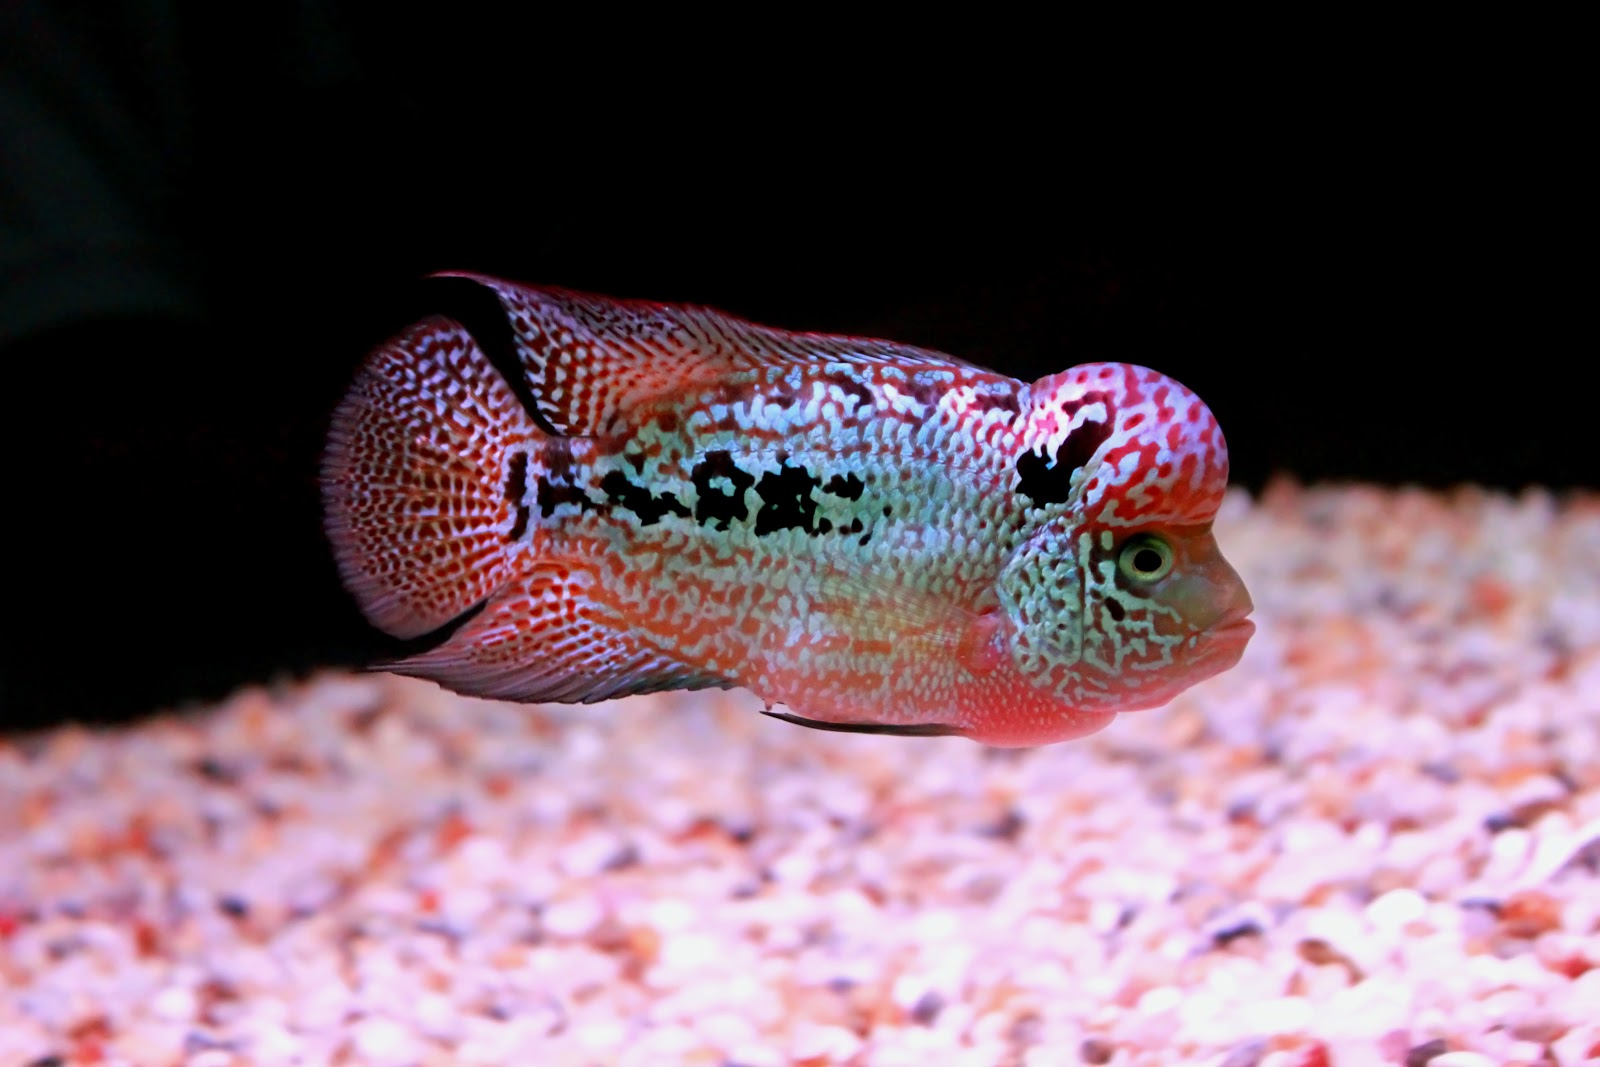 Super mp king kamfa kk 01712 viet nam amg flowerhorn farm for Flower horn fish price